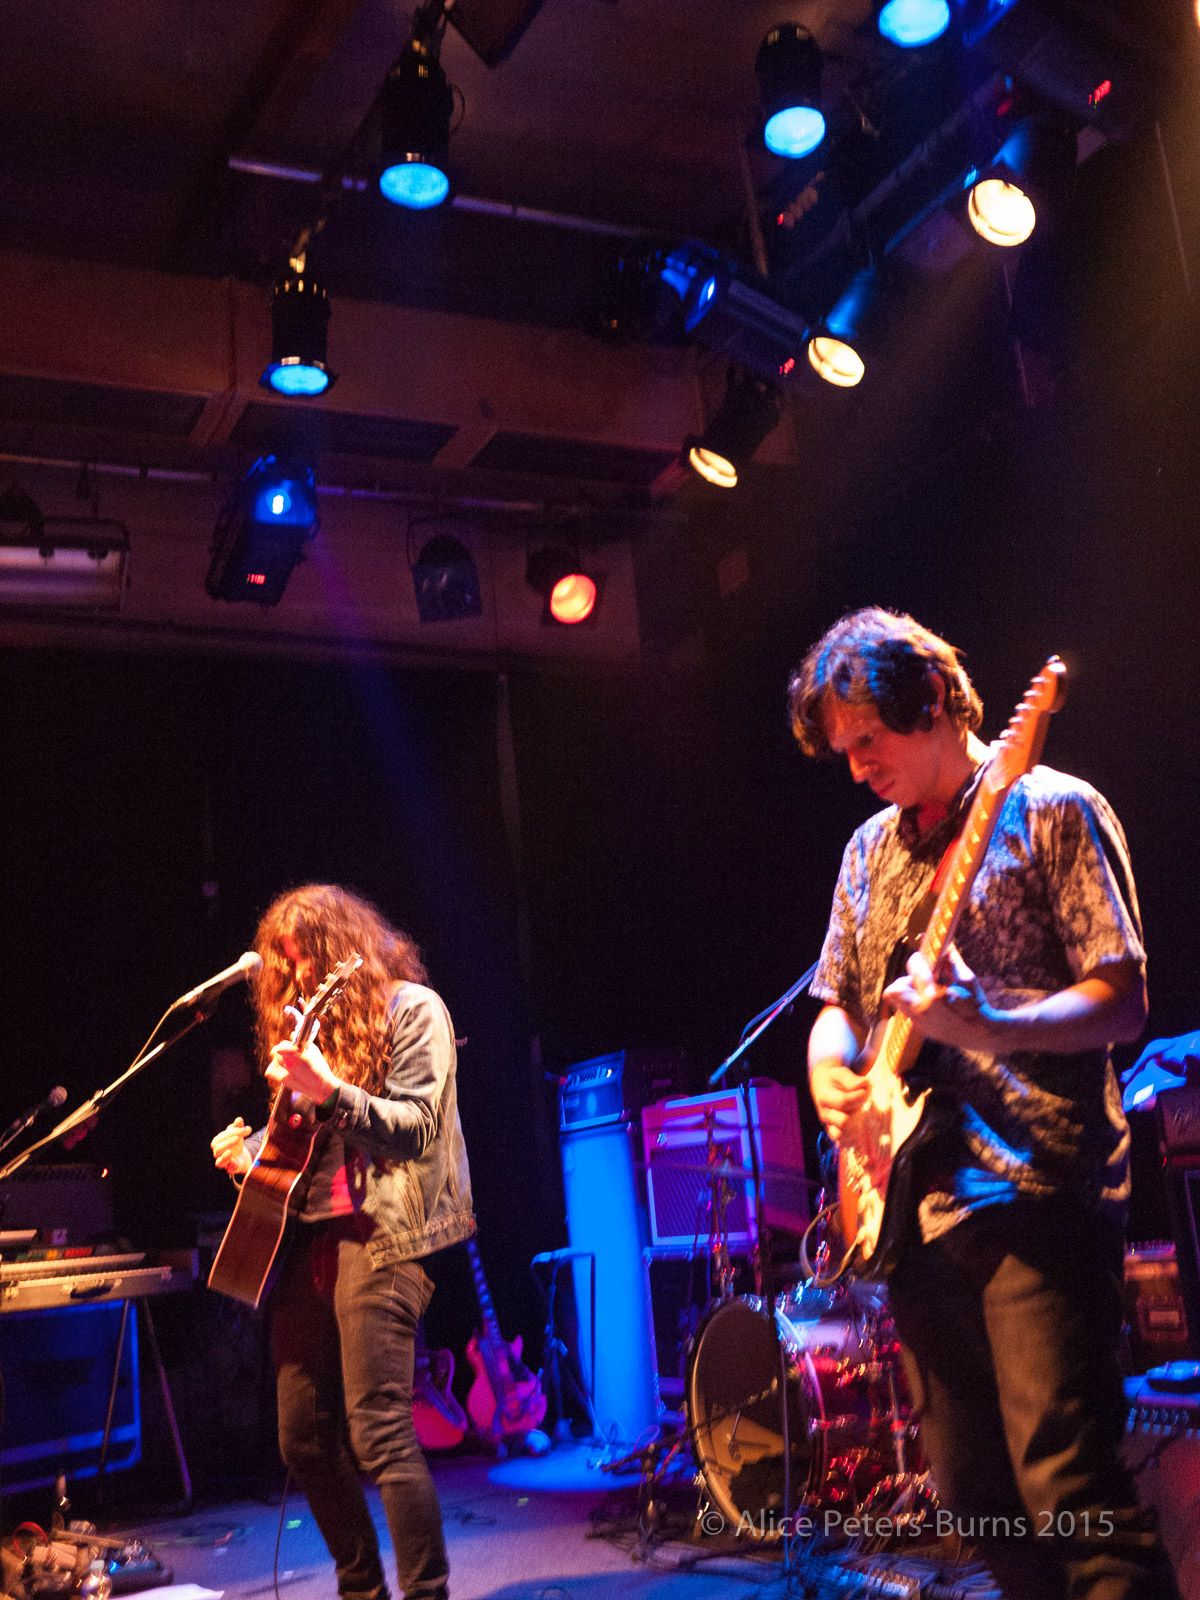 Concert review, Kurt Vile, Cologne, Nov 12th 2015